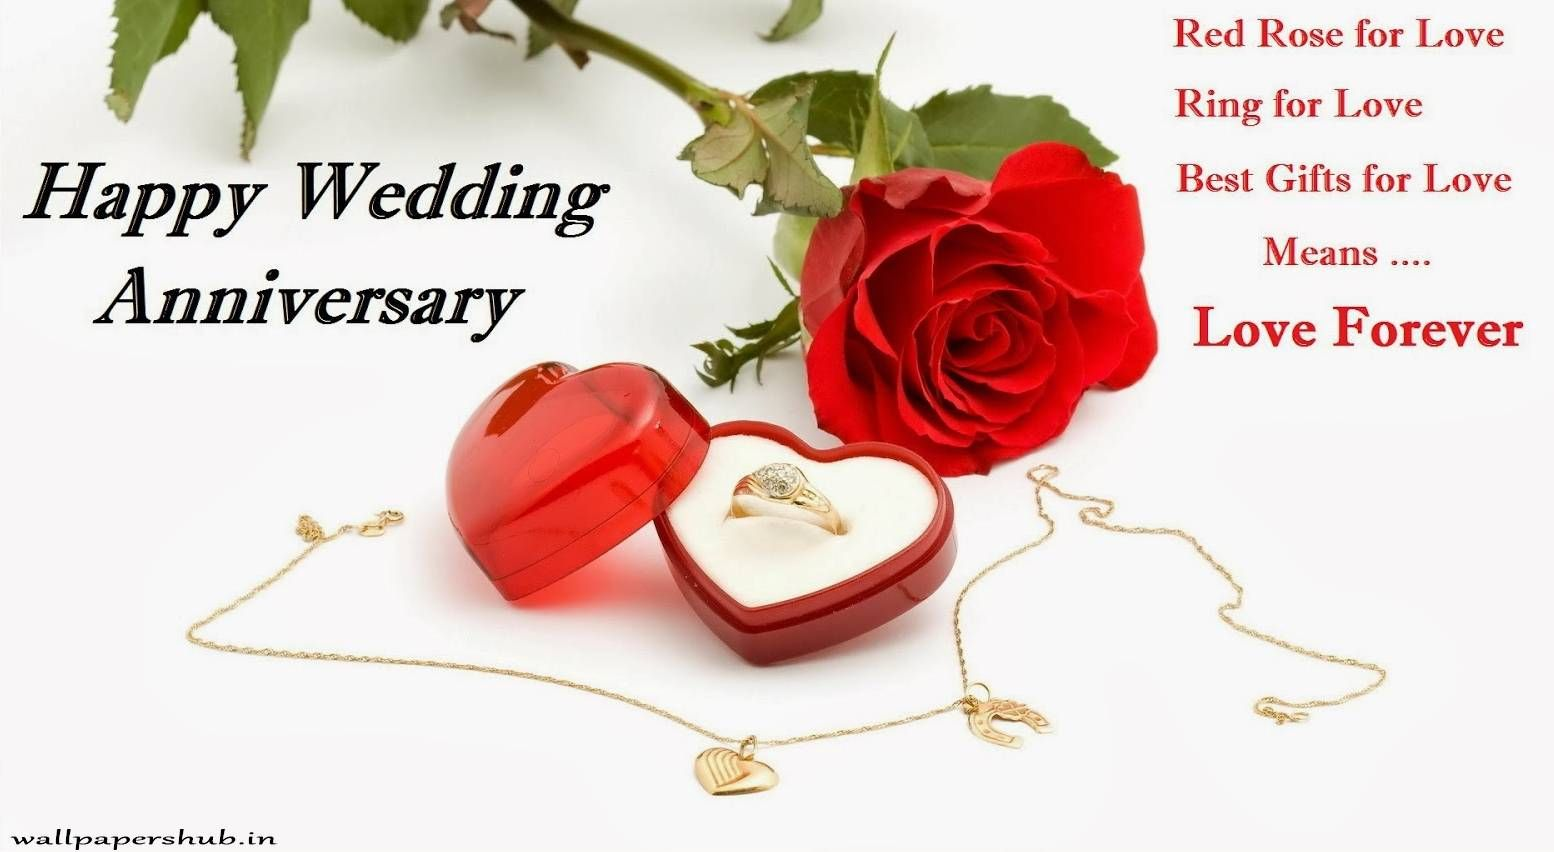 21 Best Images About Marriage Anniversary On Pinterest